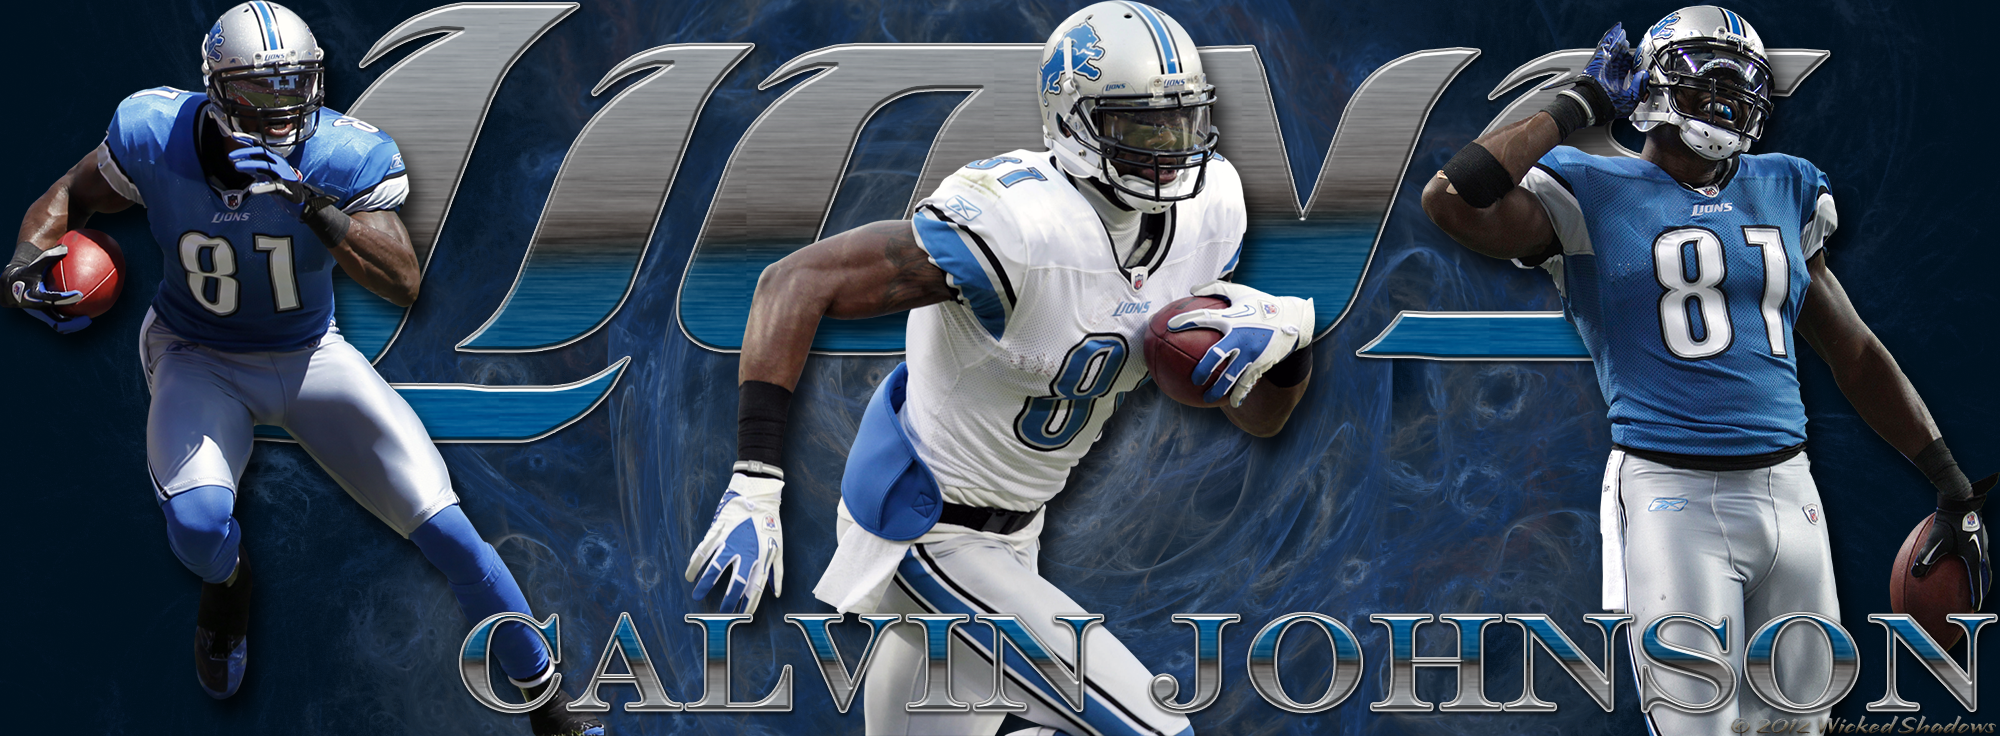 Mobile Detroit Lions Pictures| HDQ Cover B.SCB WP&BG Collection